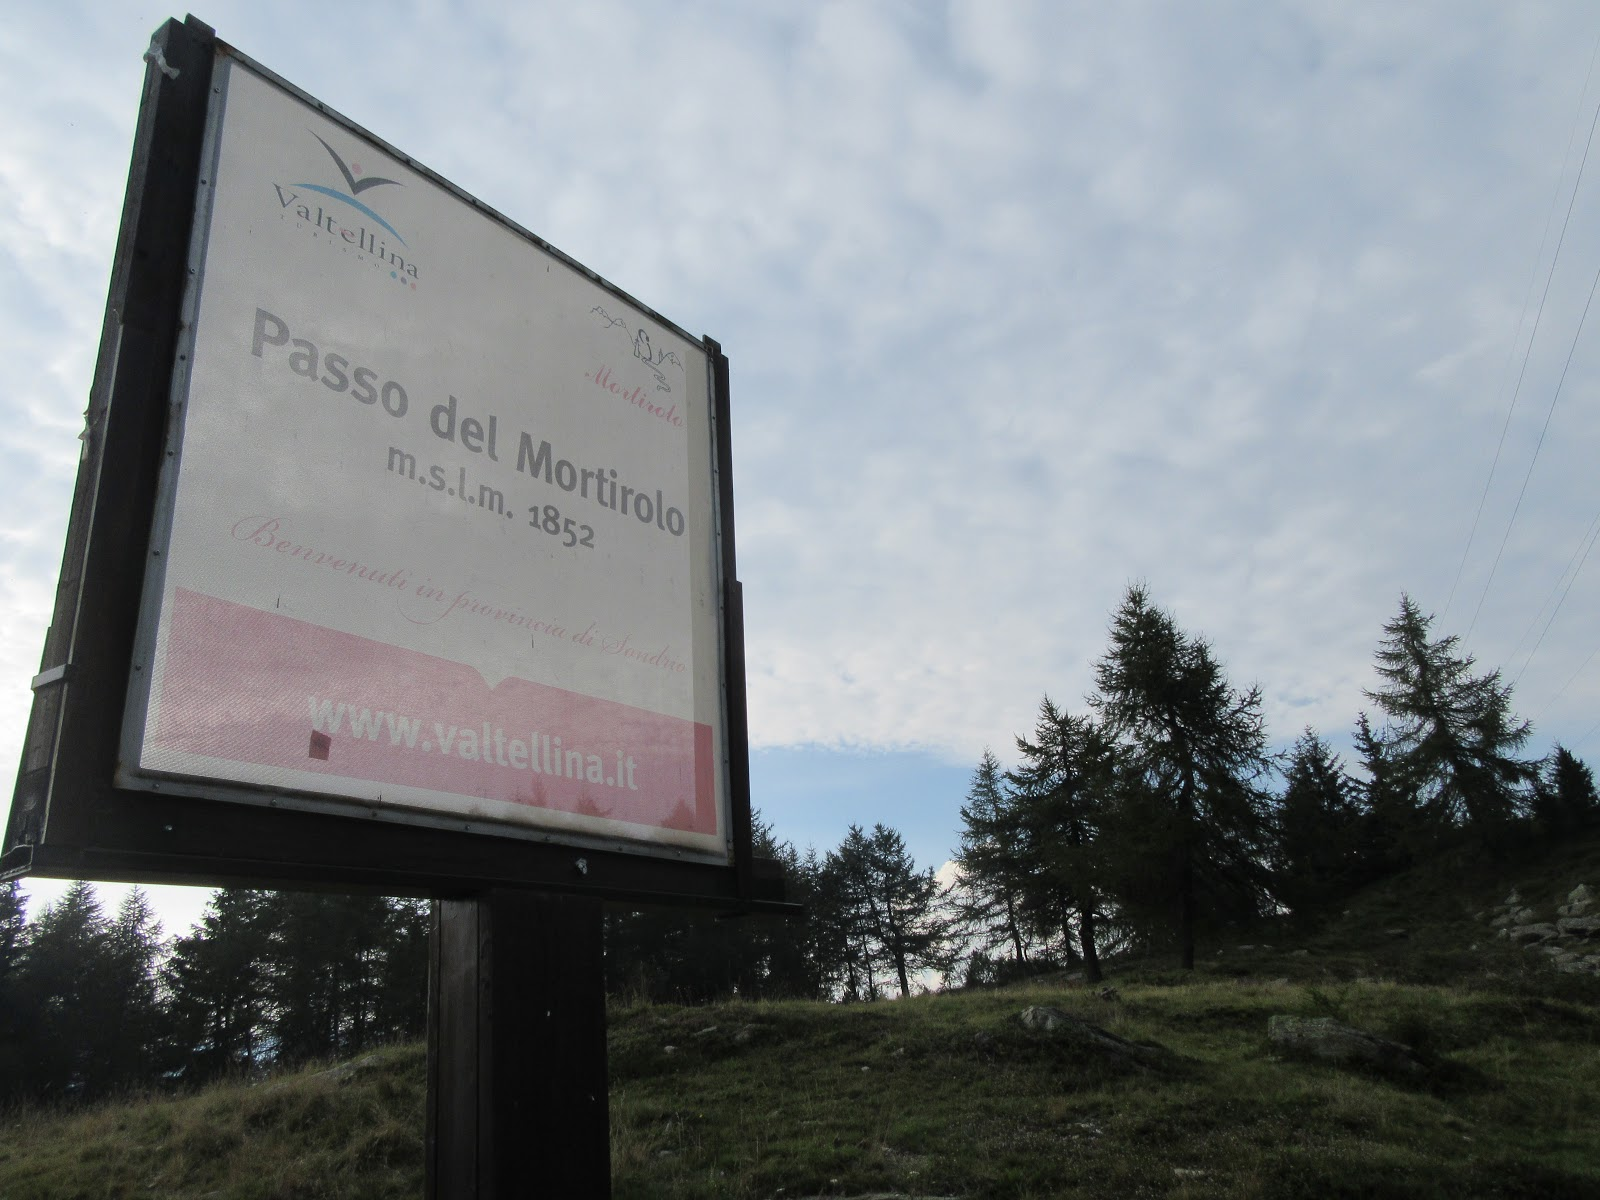 Bike climb of Passo del Mortirolo from Grossio - sign at the top of the climb